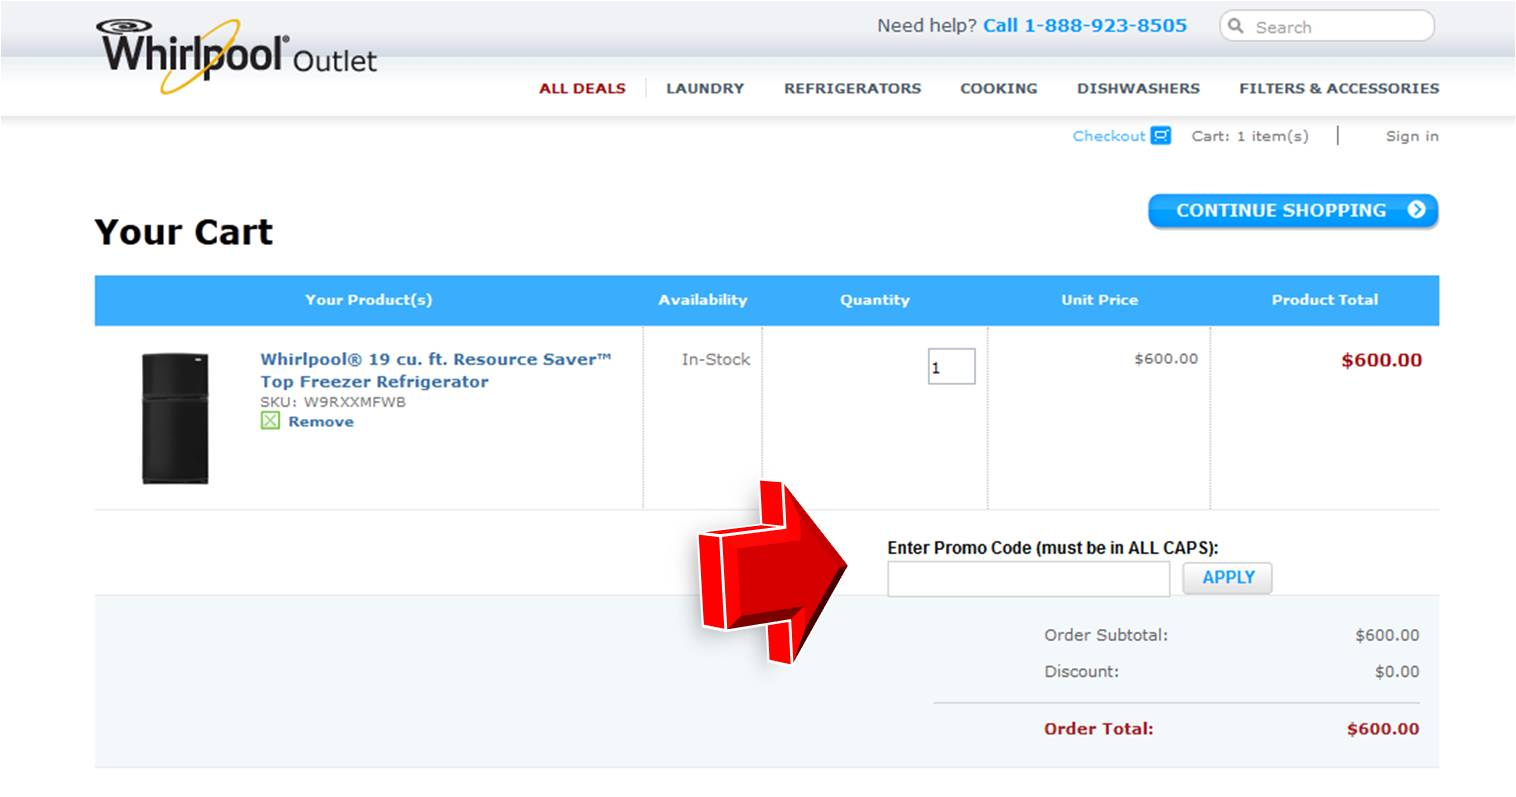 Whirlpool coupon coupon code - Whirlpool discount ...